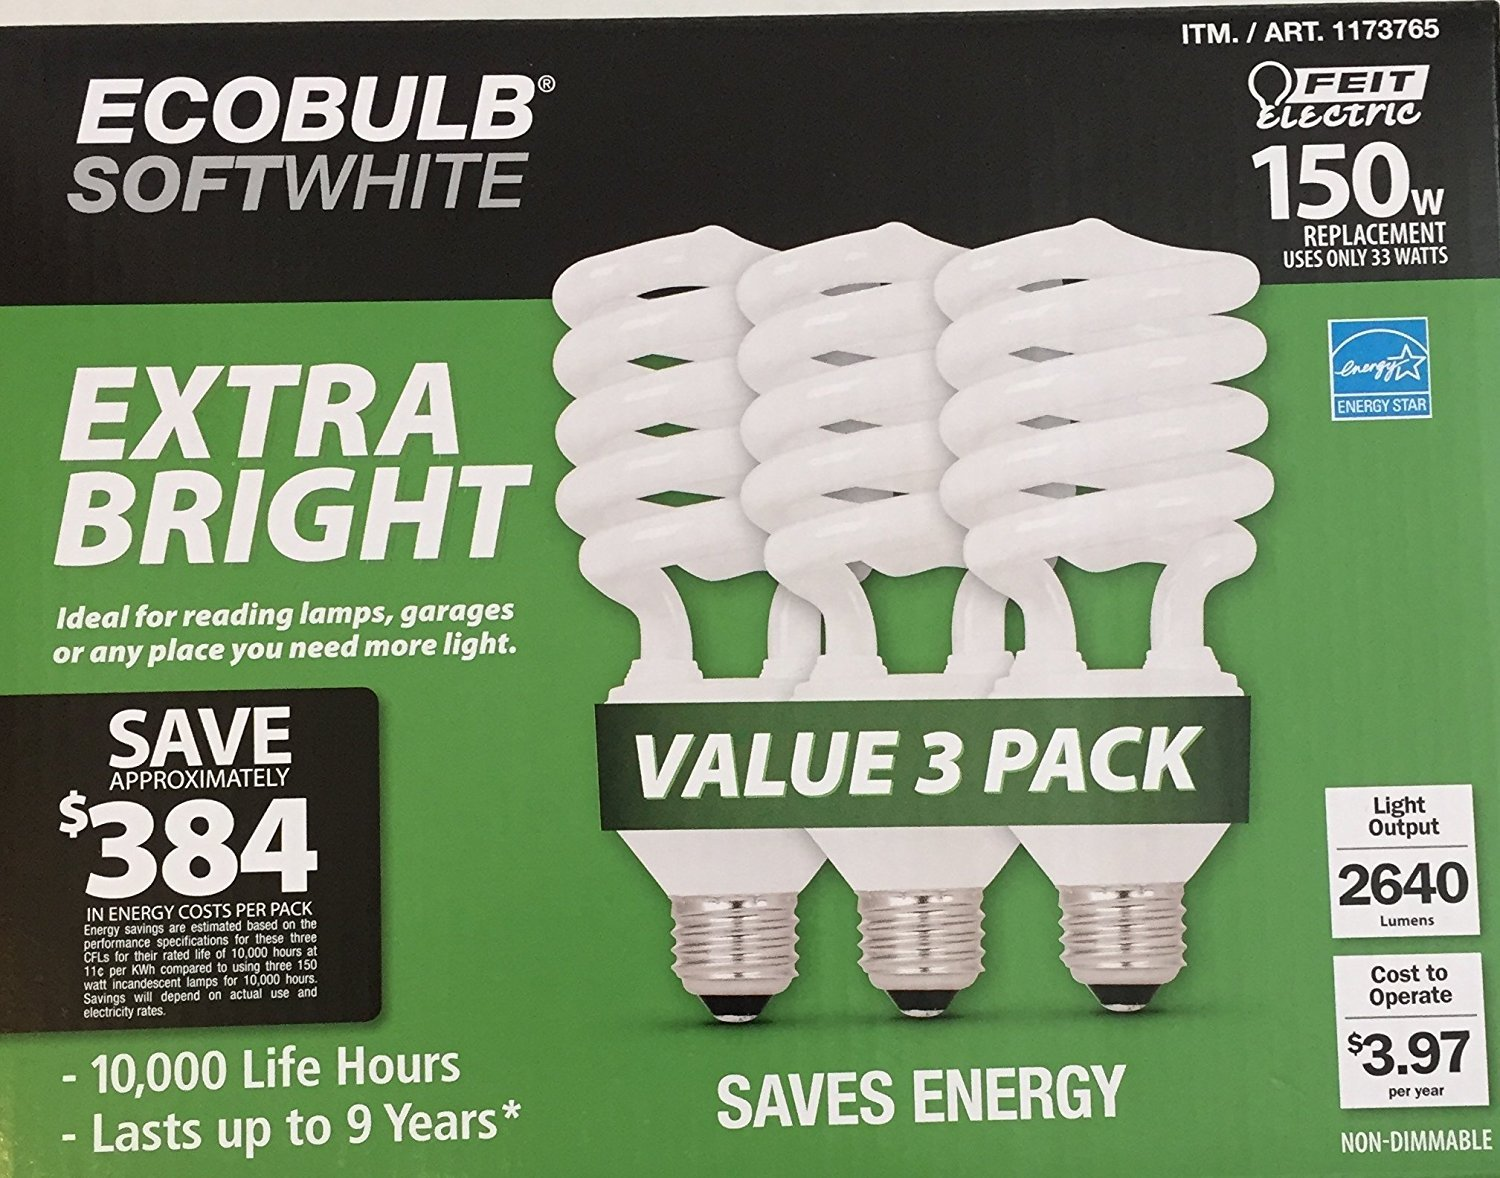 Feit Electric EcoBulb Soft White 33W Extra Bright 150W Equivalent Compact Fluorescent Light Bulb CFL 3 Pack 1173765-ESL33T//3